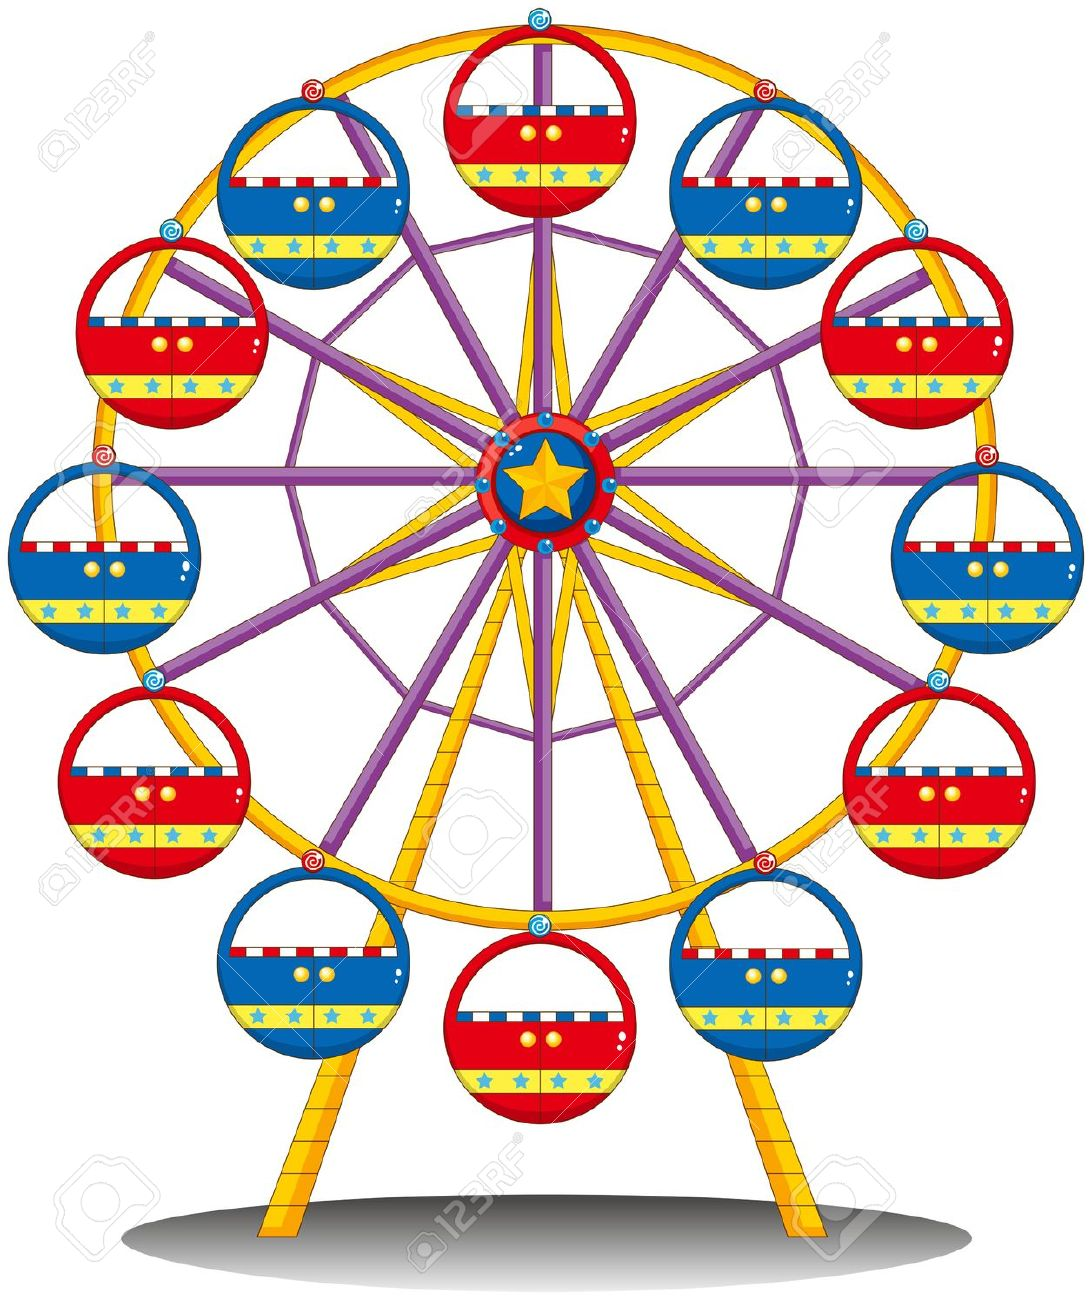 4,236 Ferris Wheel Stock Vector Illustration And Royalty Free.